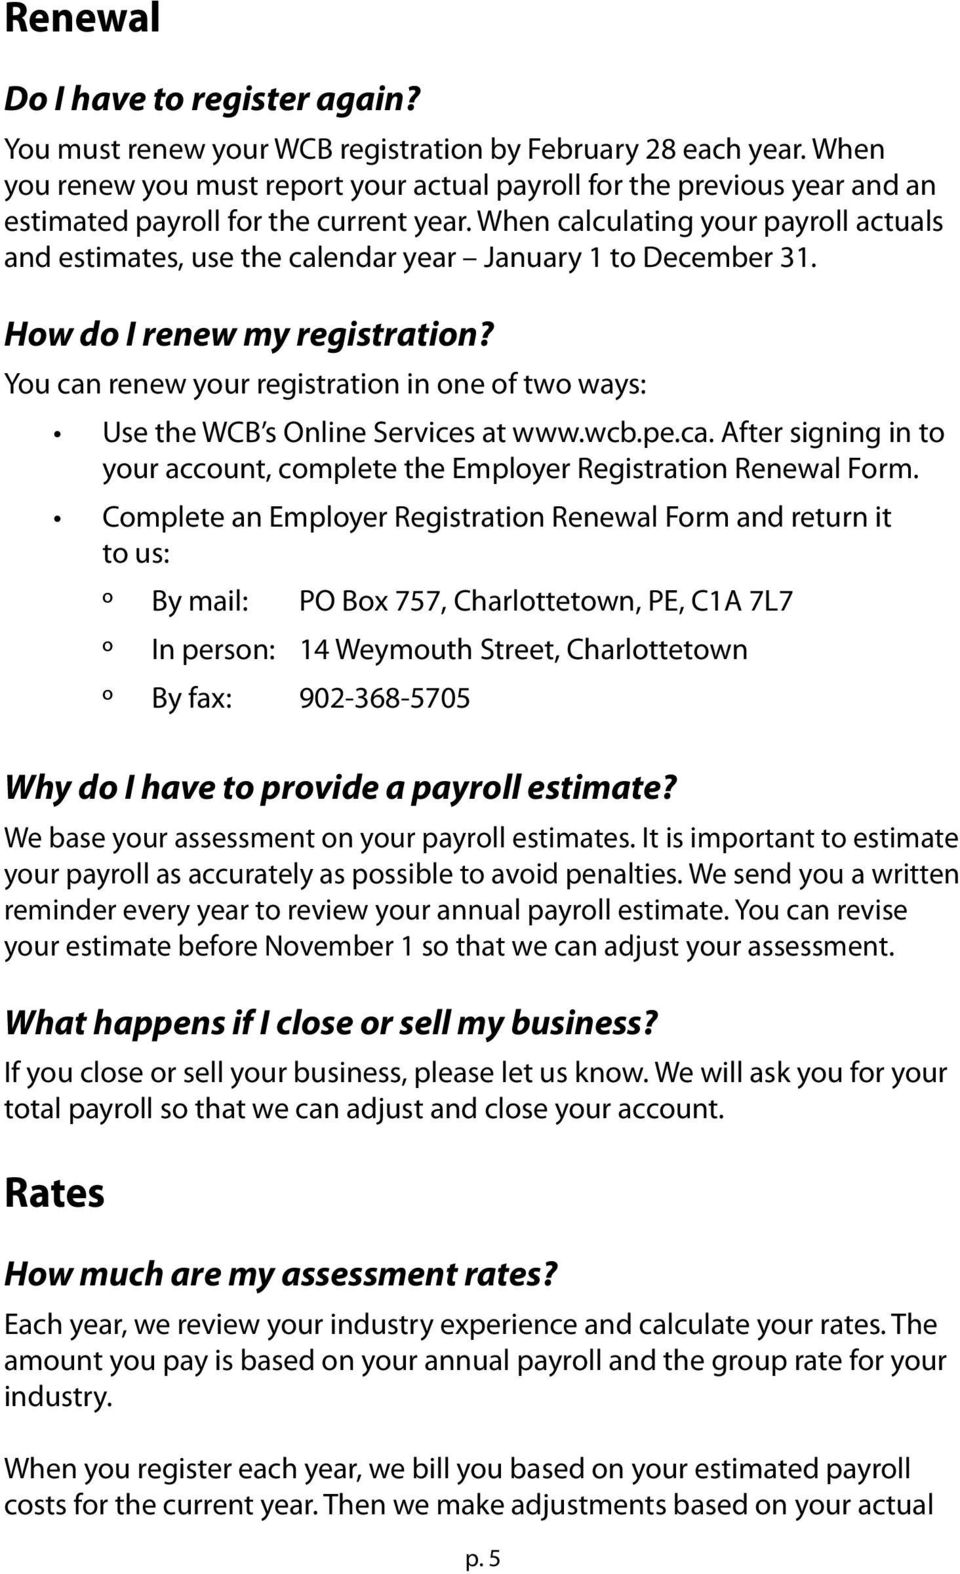 When calculating your payroll actuals and estimates, use the calendar year January 1 to December 31. How do I renew my registration?